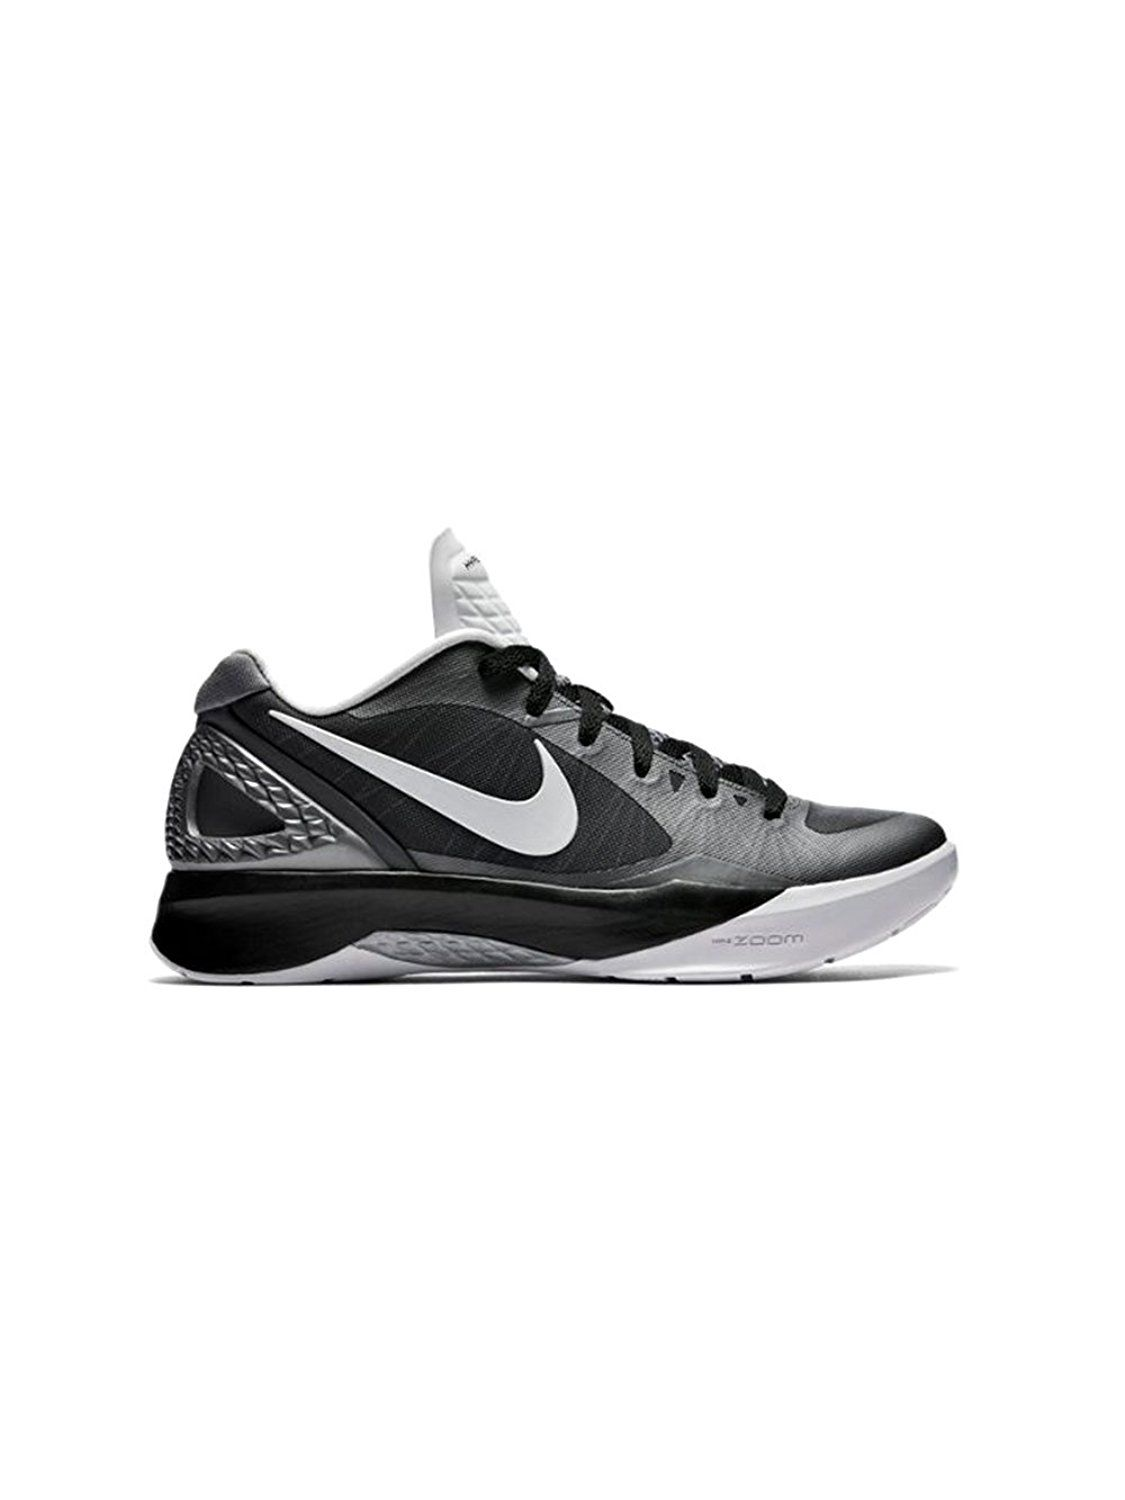 Nike Volley Zoom Hyperspike Women S Volleyball Shoes Cool Grey White Mtlc Cool Grey Black 9 5 B M Volleyball Shoes Nike Volleyball Shoes Volleyball Sneakers